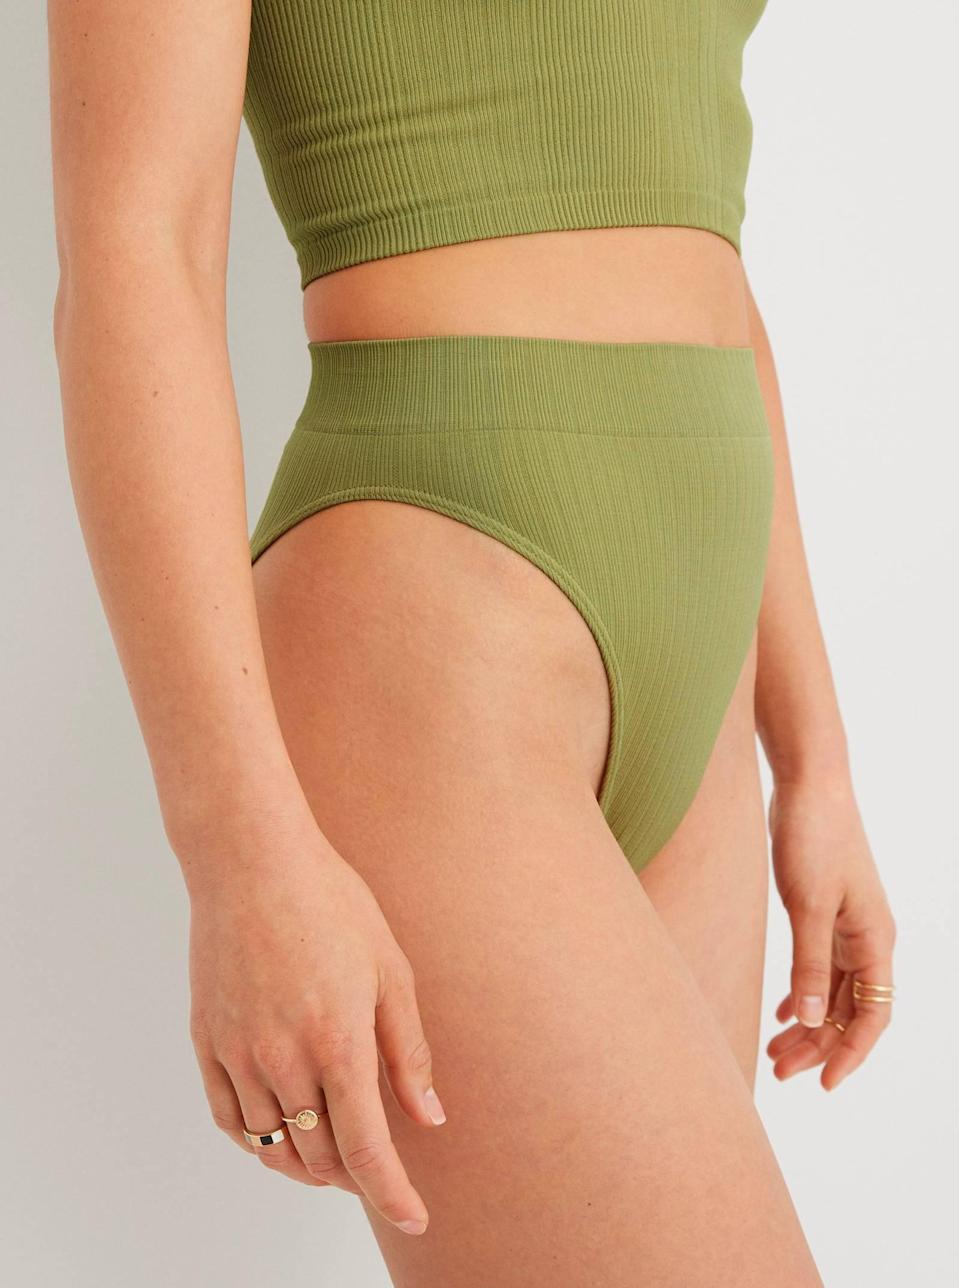 """The MVP of affordable intimates, Aerie's seamless styles are a solid pick if you're planning a big overhaul. We're vibing these granny panties in cute sage green. $9, Aerie. <a href=""""https://www.ae.com/us/en/p/aerie/undies/bikini-underwear/aerie-seamless-high-cut-bikini-underwear/6773_7193_343?"""" rel=""""nofollow noopener"""" target=""""_blank"""" data-ylk=""""slk:Get it now!"""" class=""""link rapid-noclick-resp"""">Get it now!</a>"""